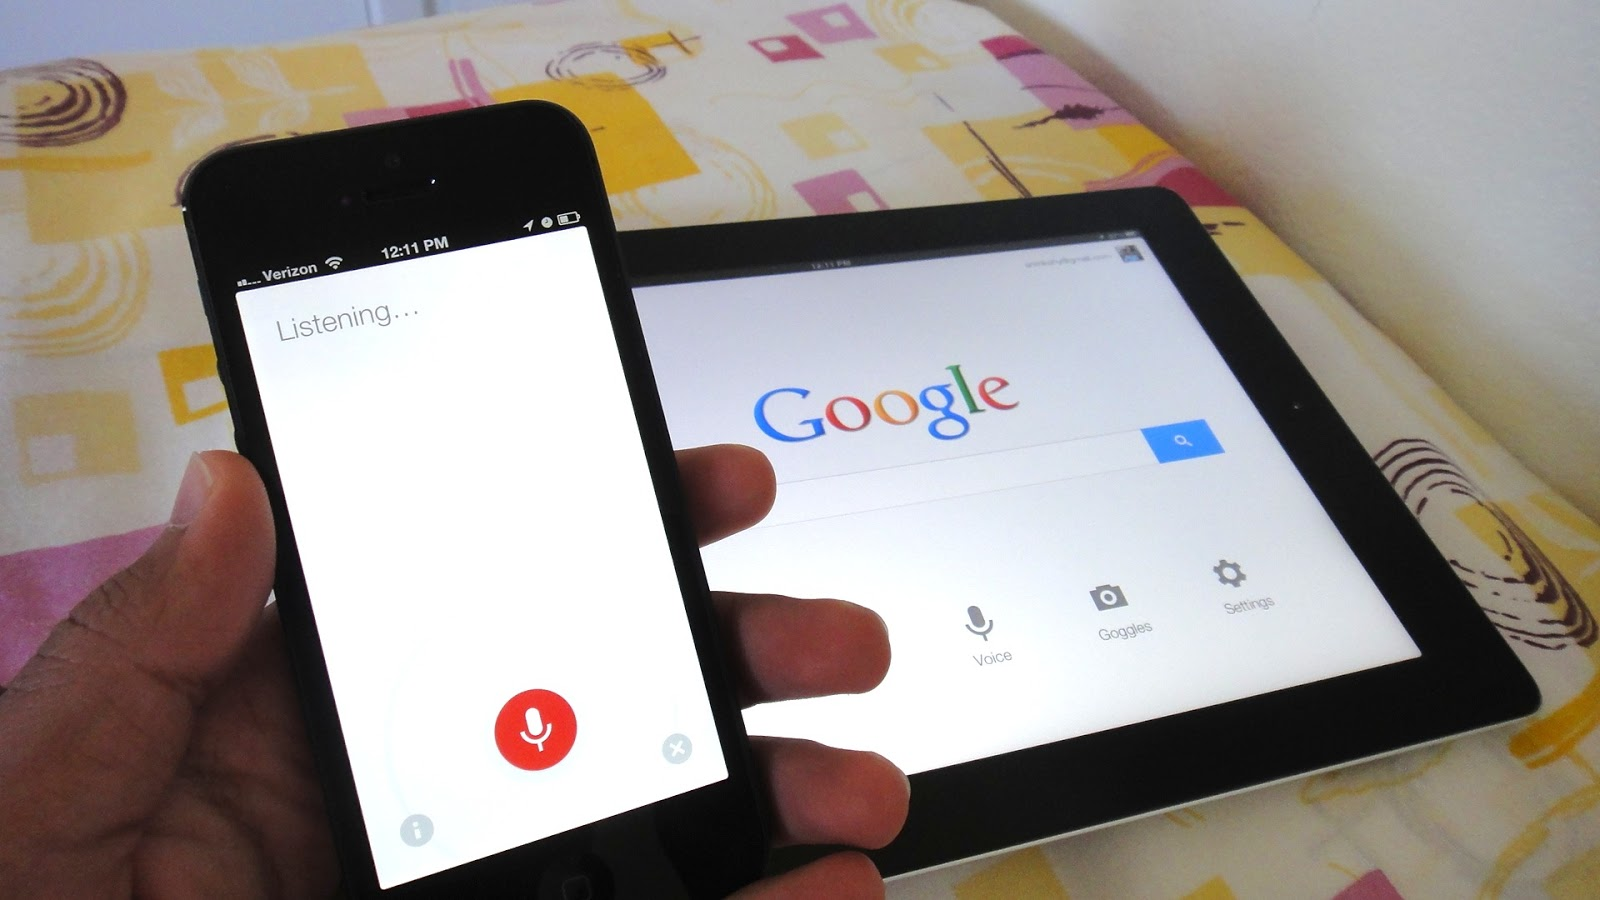 Accessing Hands-Free Voice Search With The Google App